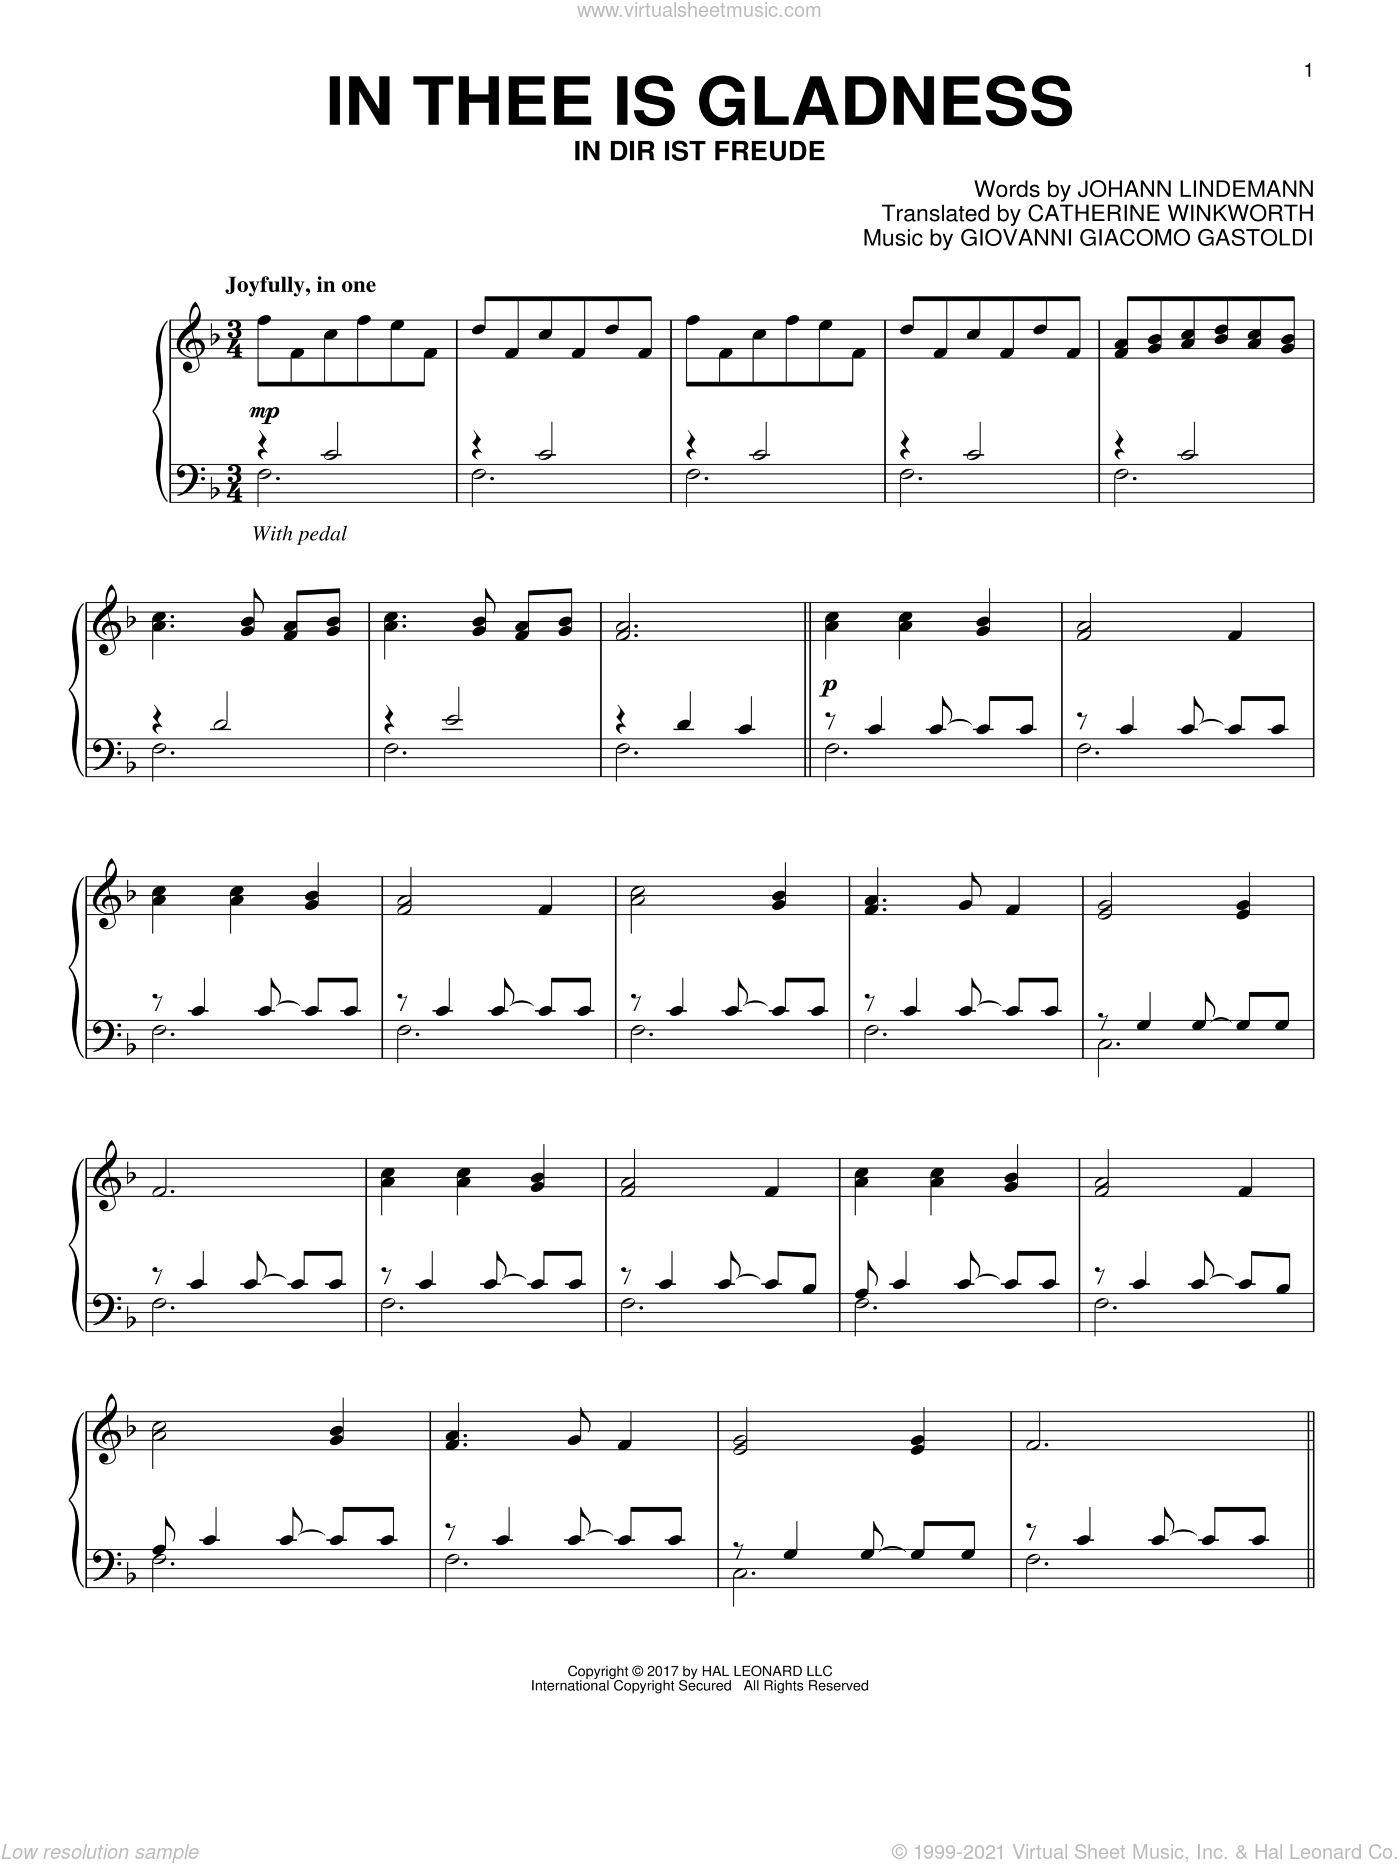 In Thee Is Gladness sheet music for piano solo by Catherine Winkworth, Giovanni Giacomo Gastoldi and Johann Lindemann, intermediate skill level